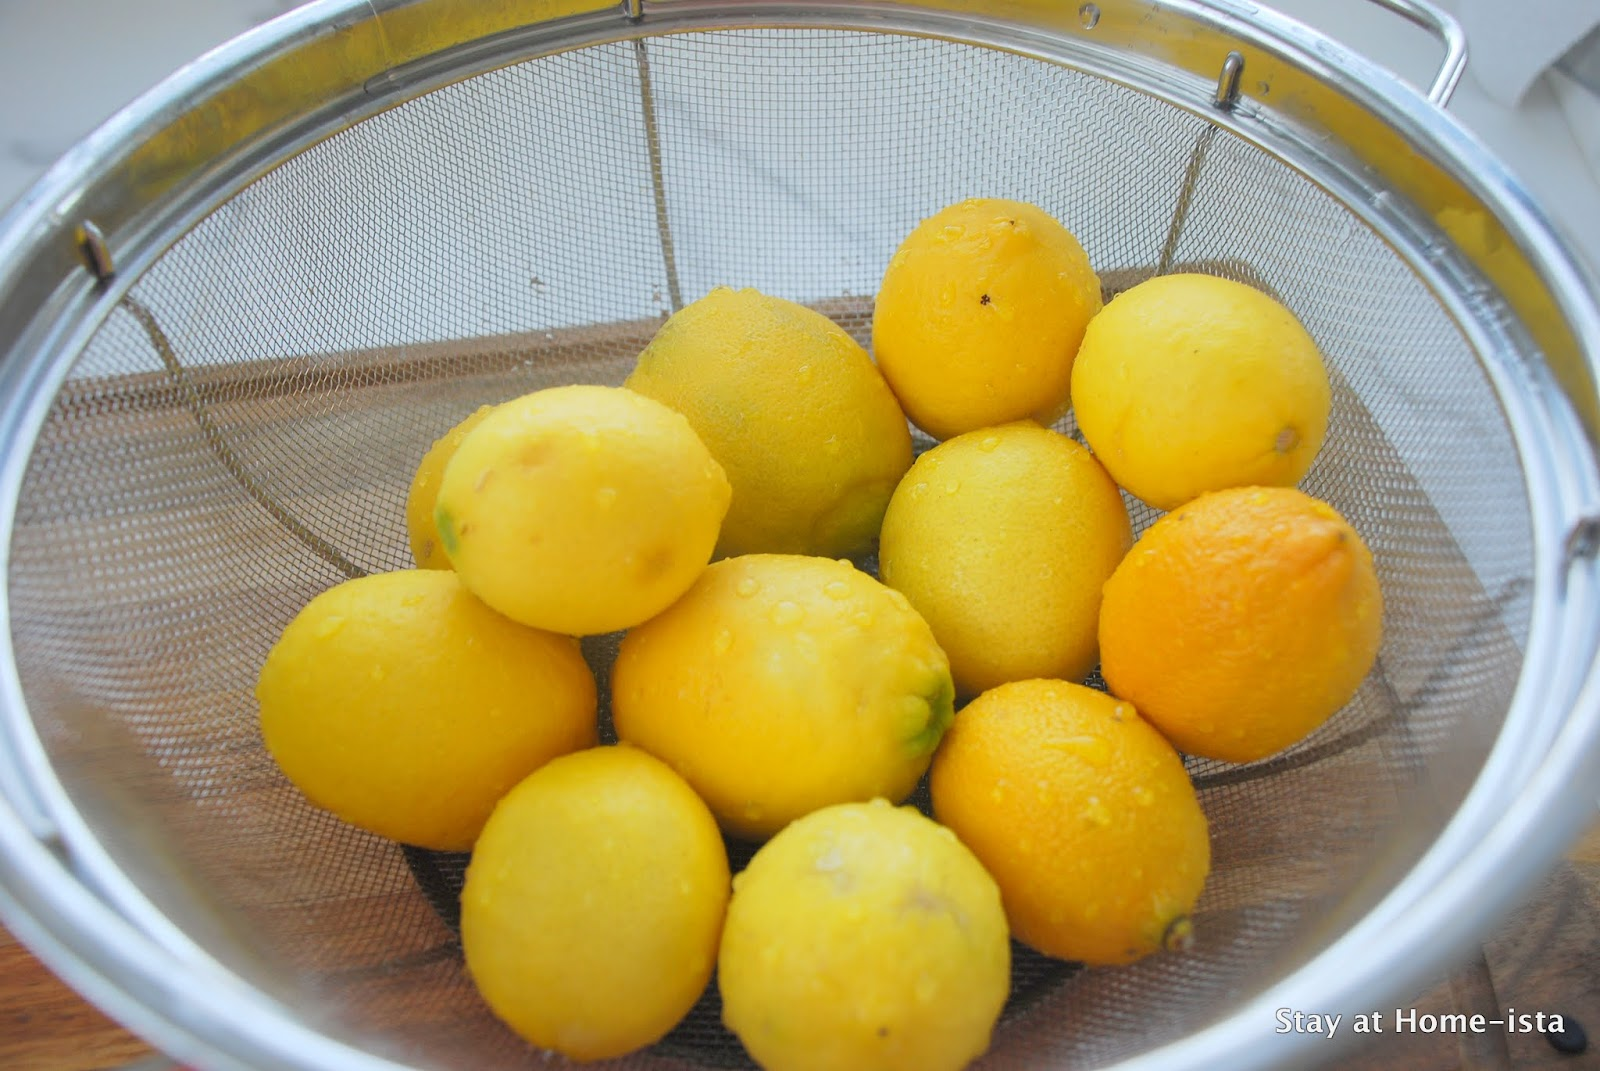 Stay at Home-ista: Lemonade, from scratch